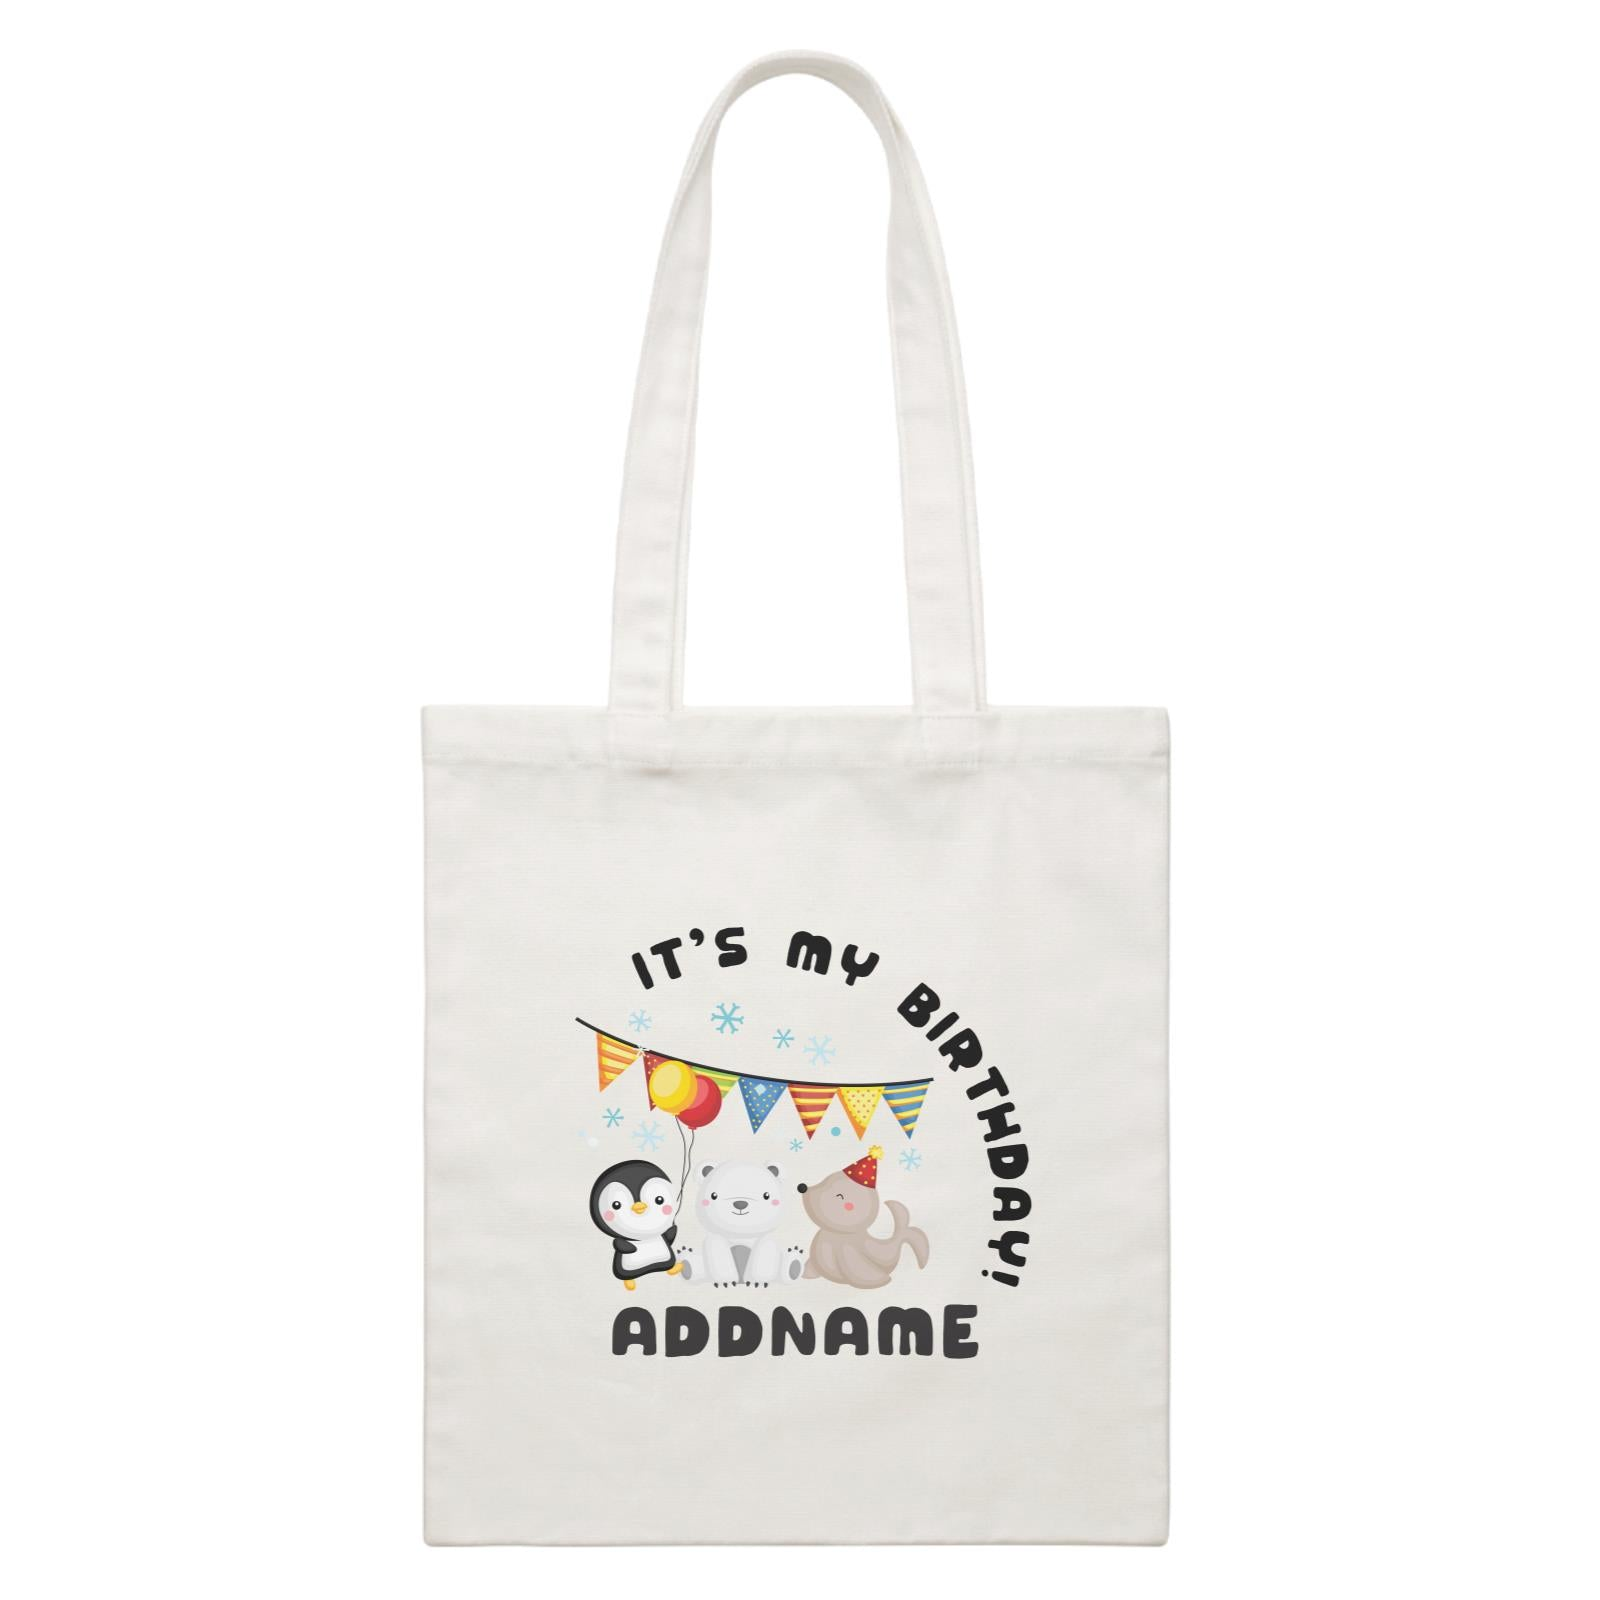 Birthday Winter Animals Penguin Polar Bear And Seal Party It's My Birthday Addname White Canvas Bag